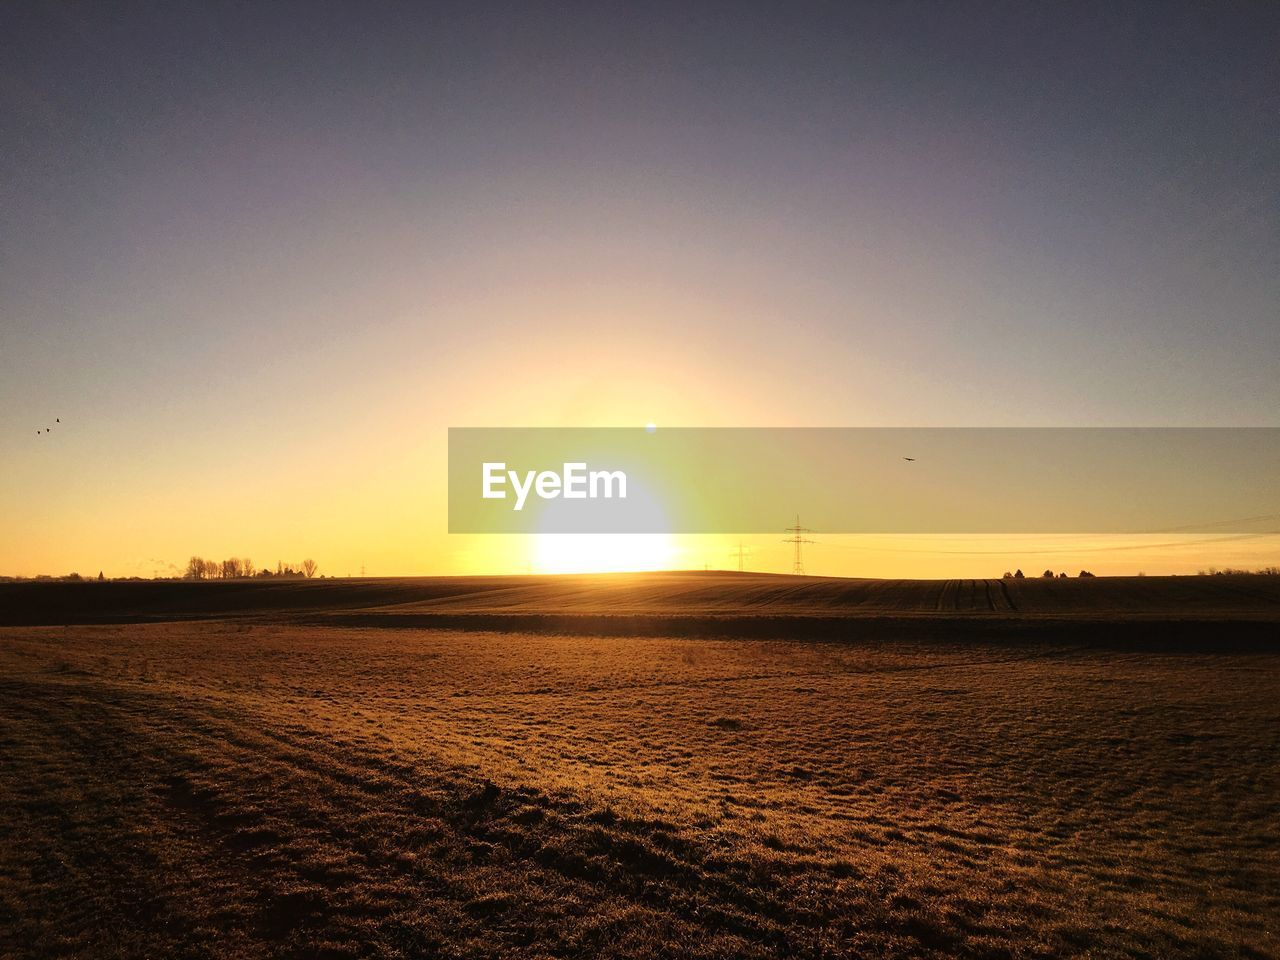 sunset, sun, orange color, nature, beauty in nature, tranquility, scenics, sky, outdoors, no people, tranquil scene, landscape, field, sunlight, silhouette, rural scene, clear sky, day